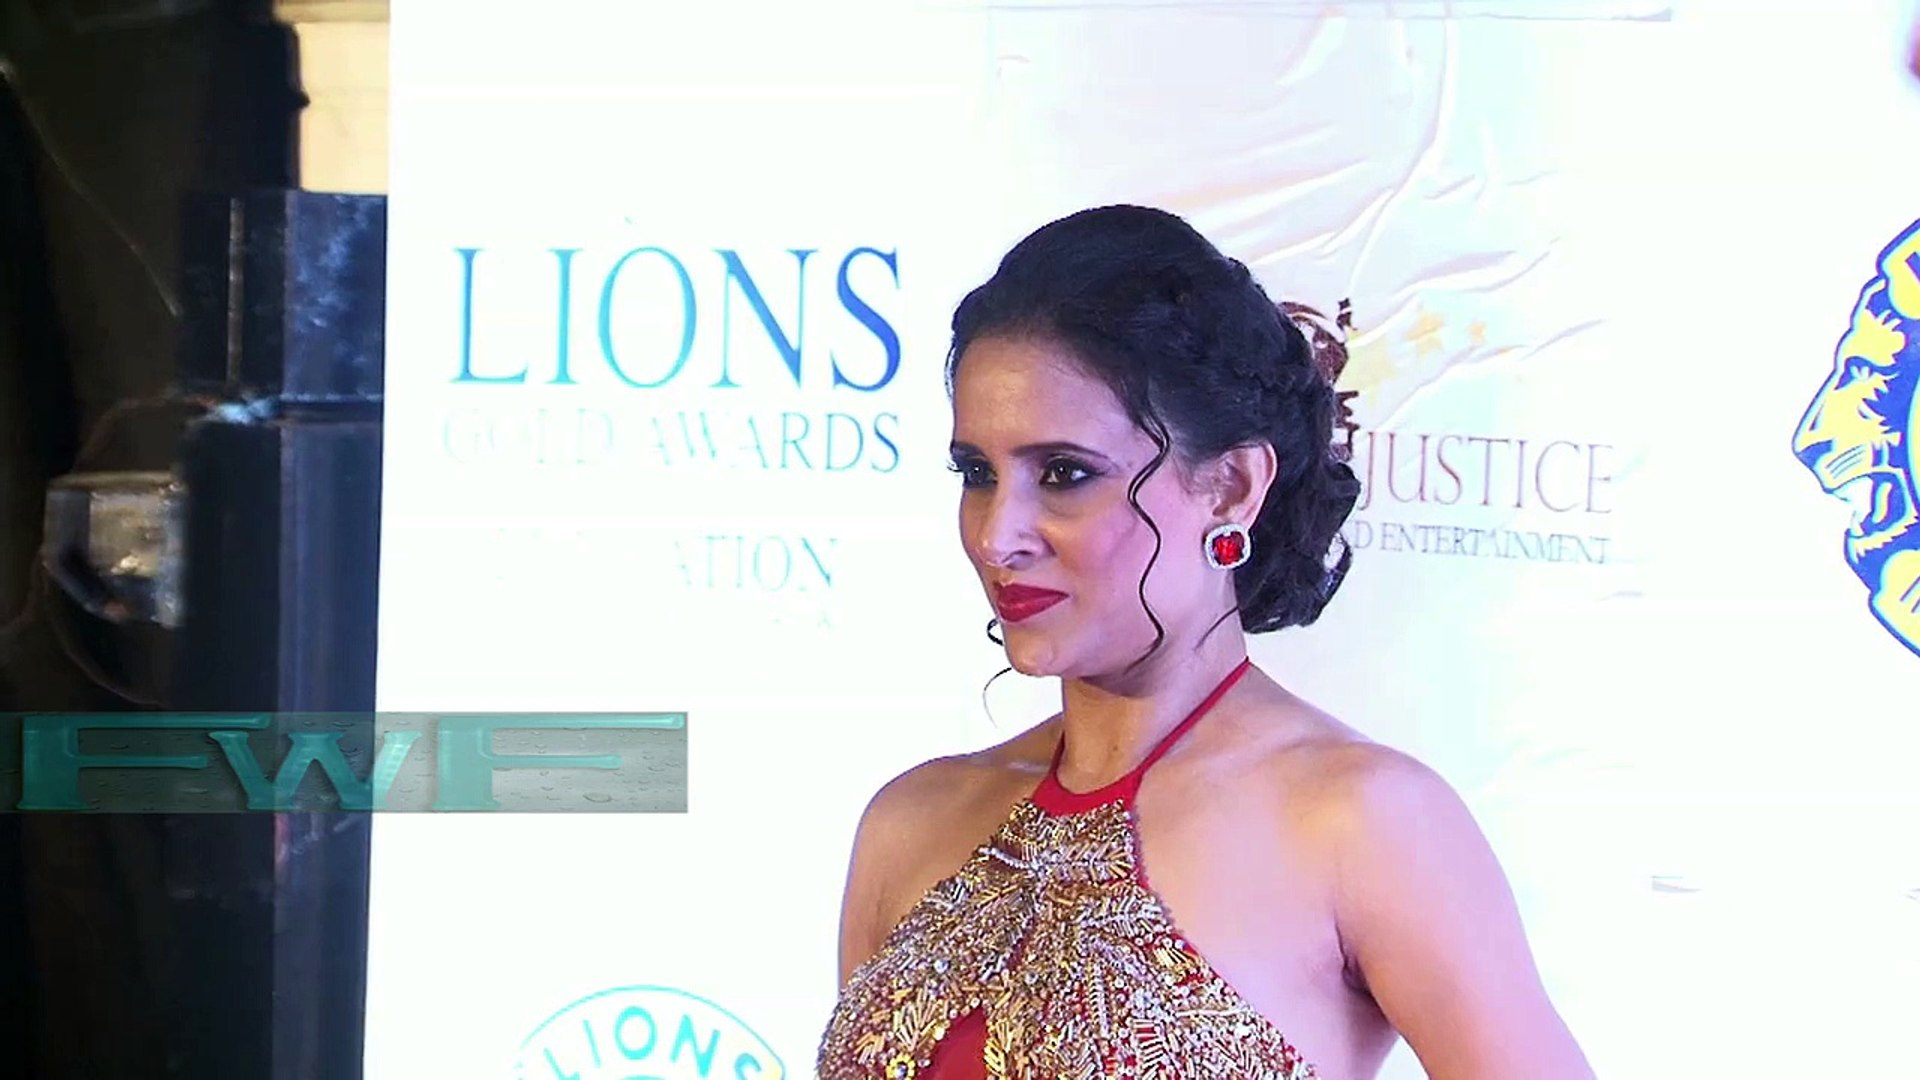 21st Lions Gold Awards Night With Bollywood Celebs (bollly wood actress masala video)